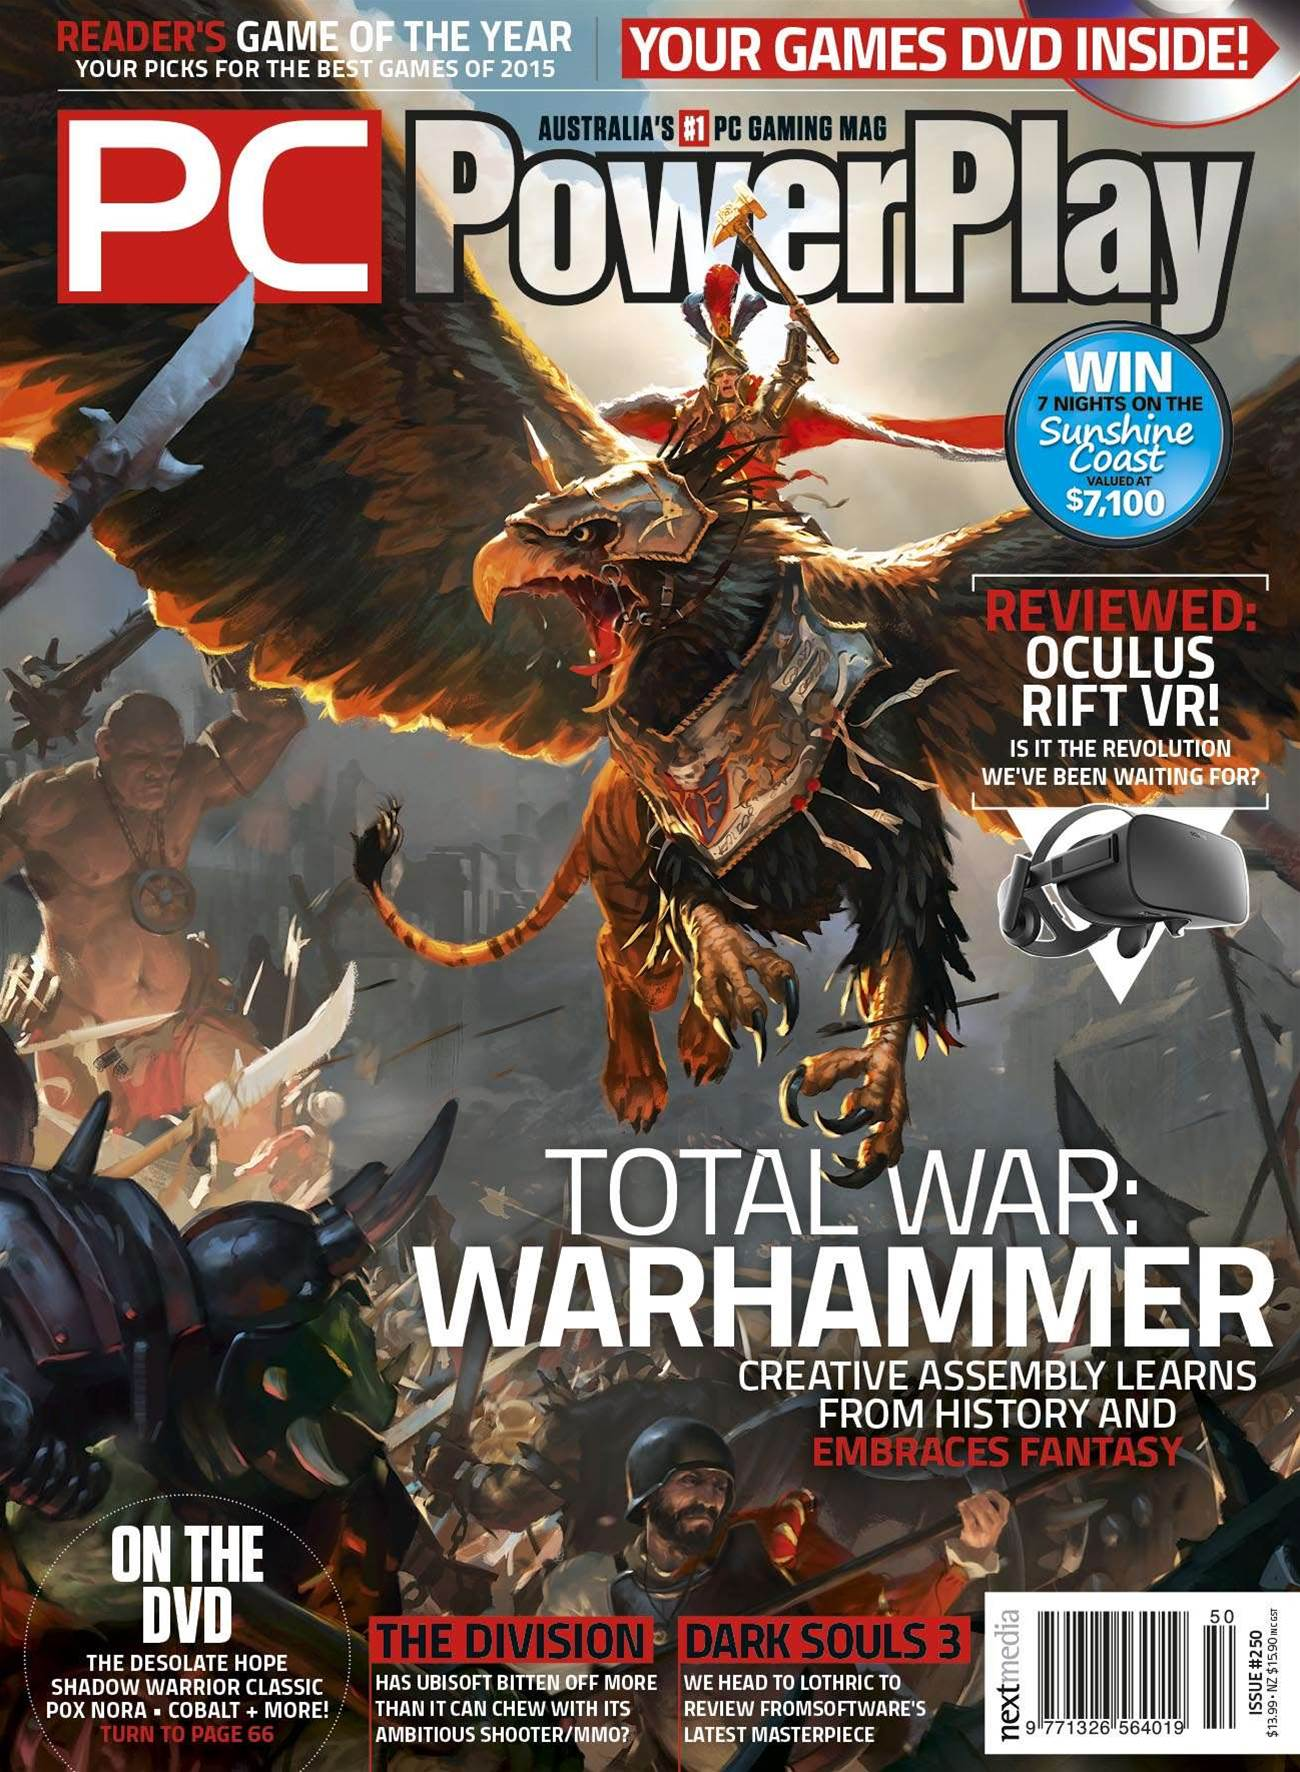 PC PowerPlay #250 out now!